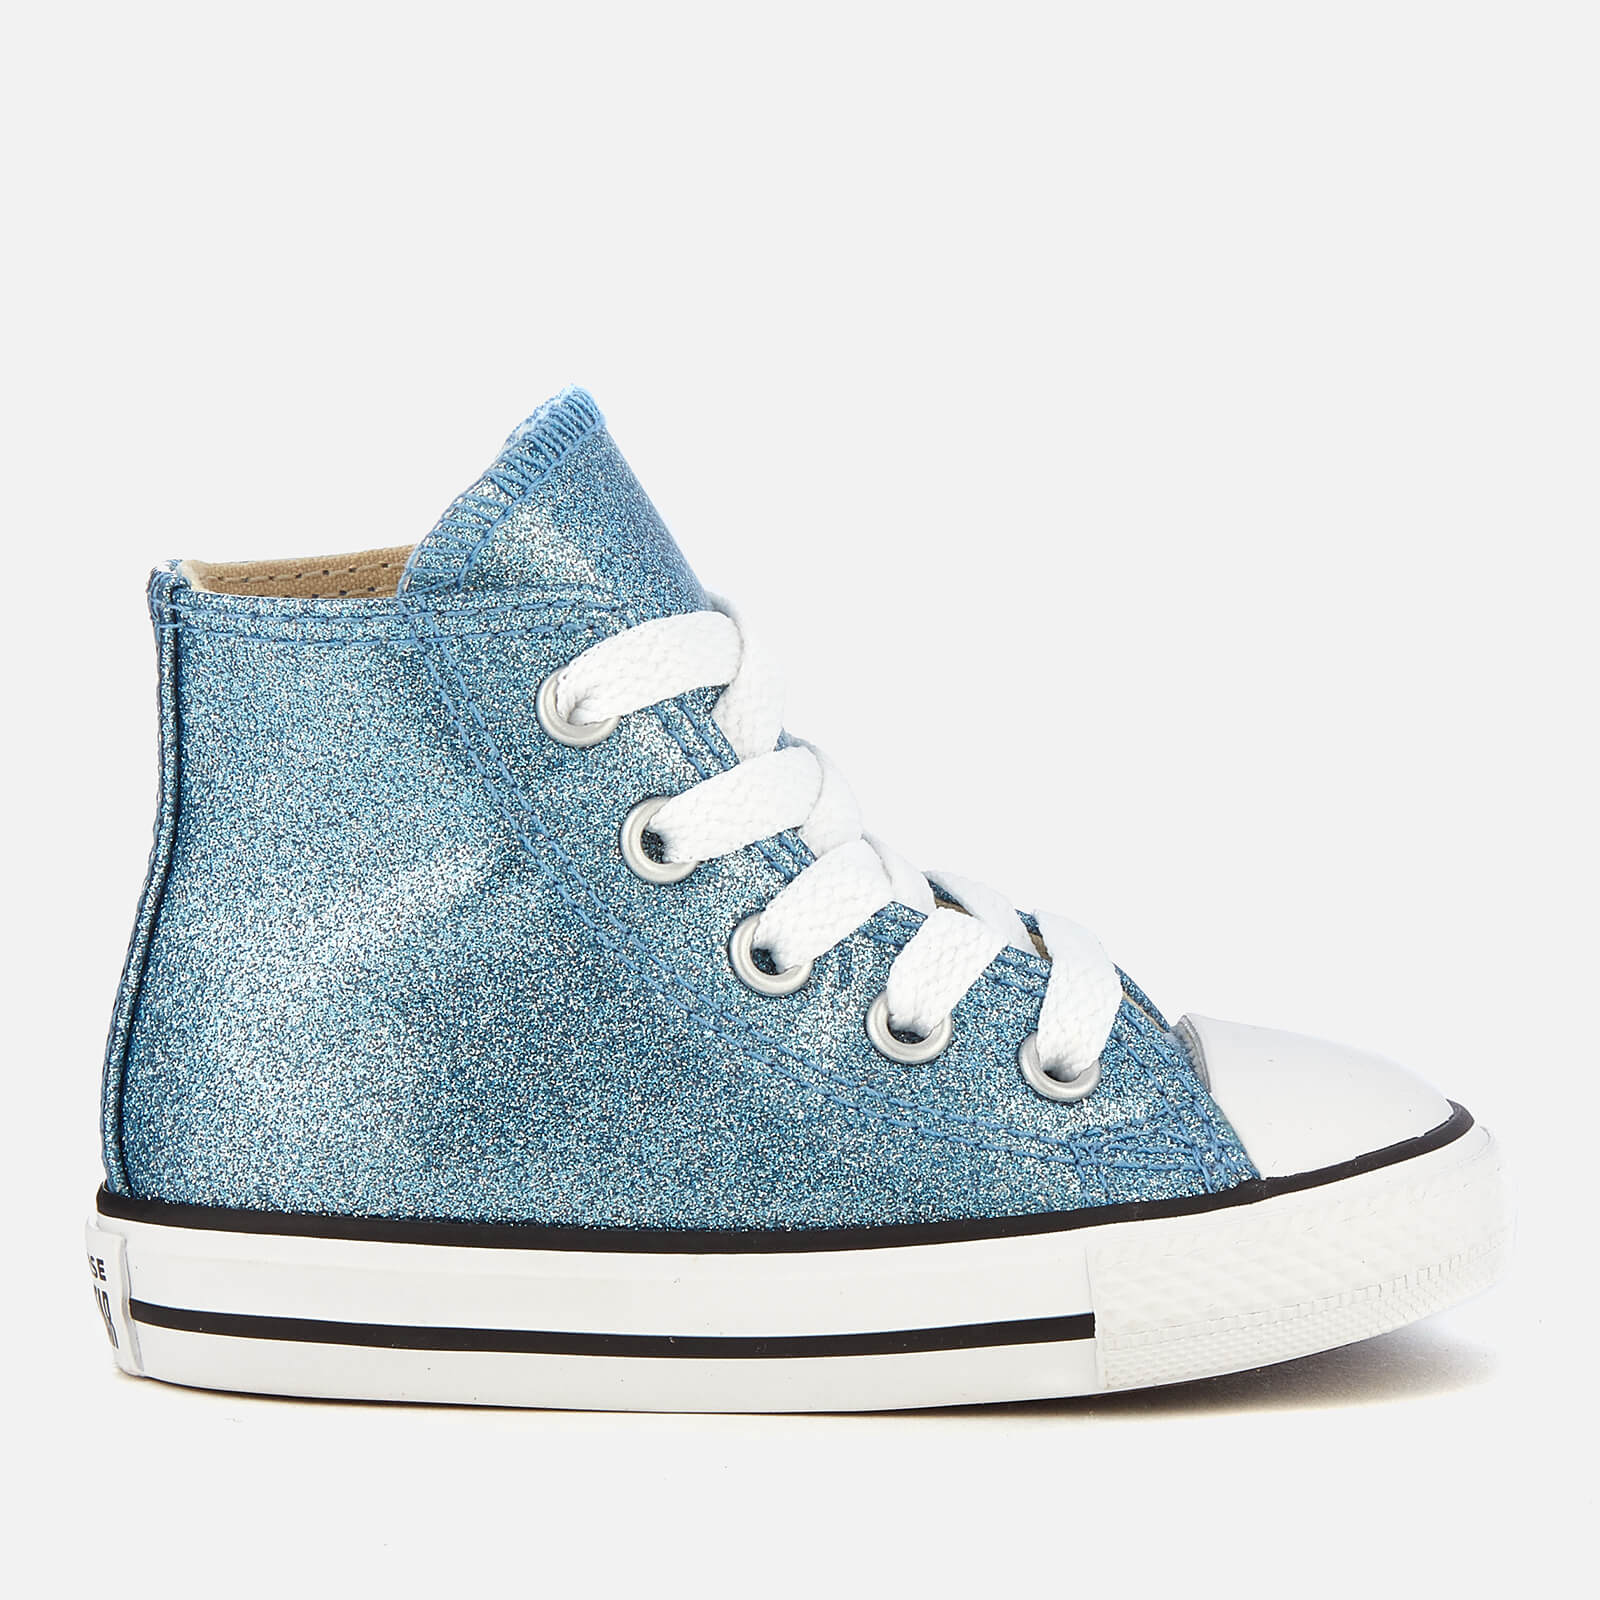 8c1fc438f1e609 Converse Toddlers  Chuck Taylor All Star Hi-Top Trainers - Light Blue  Natural White Junior Clothing